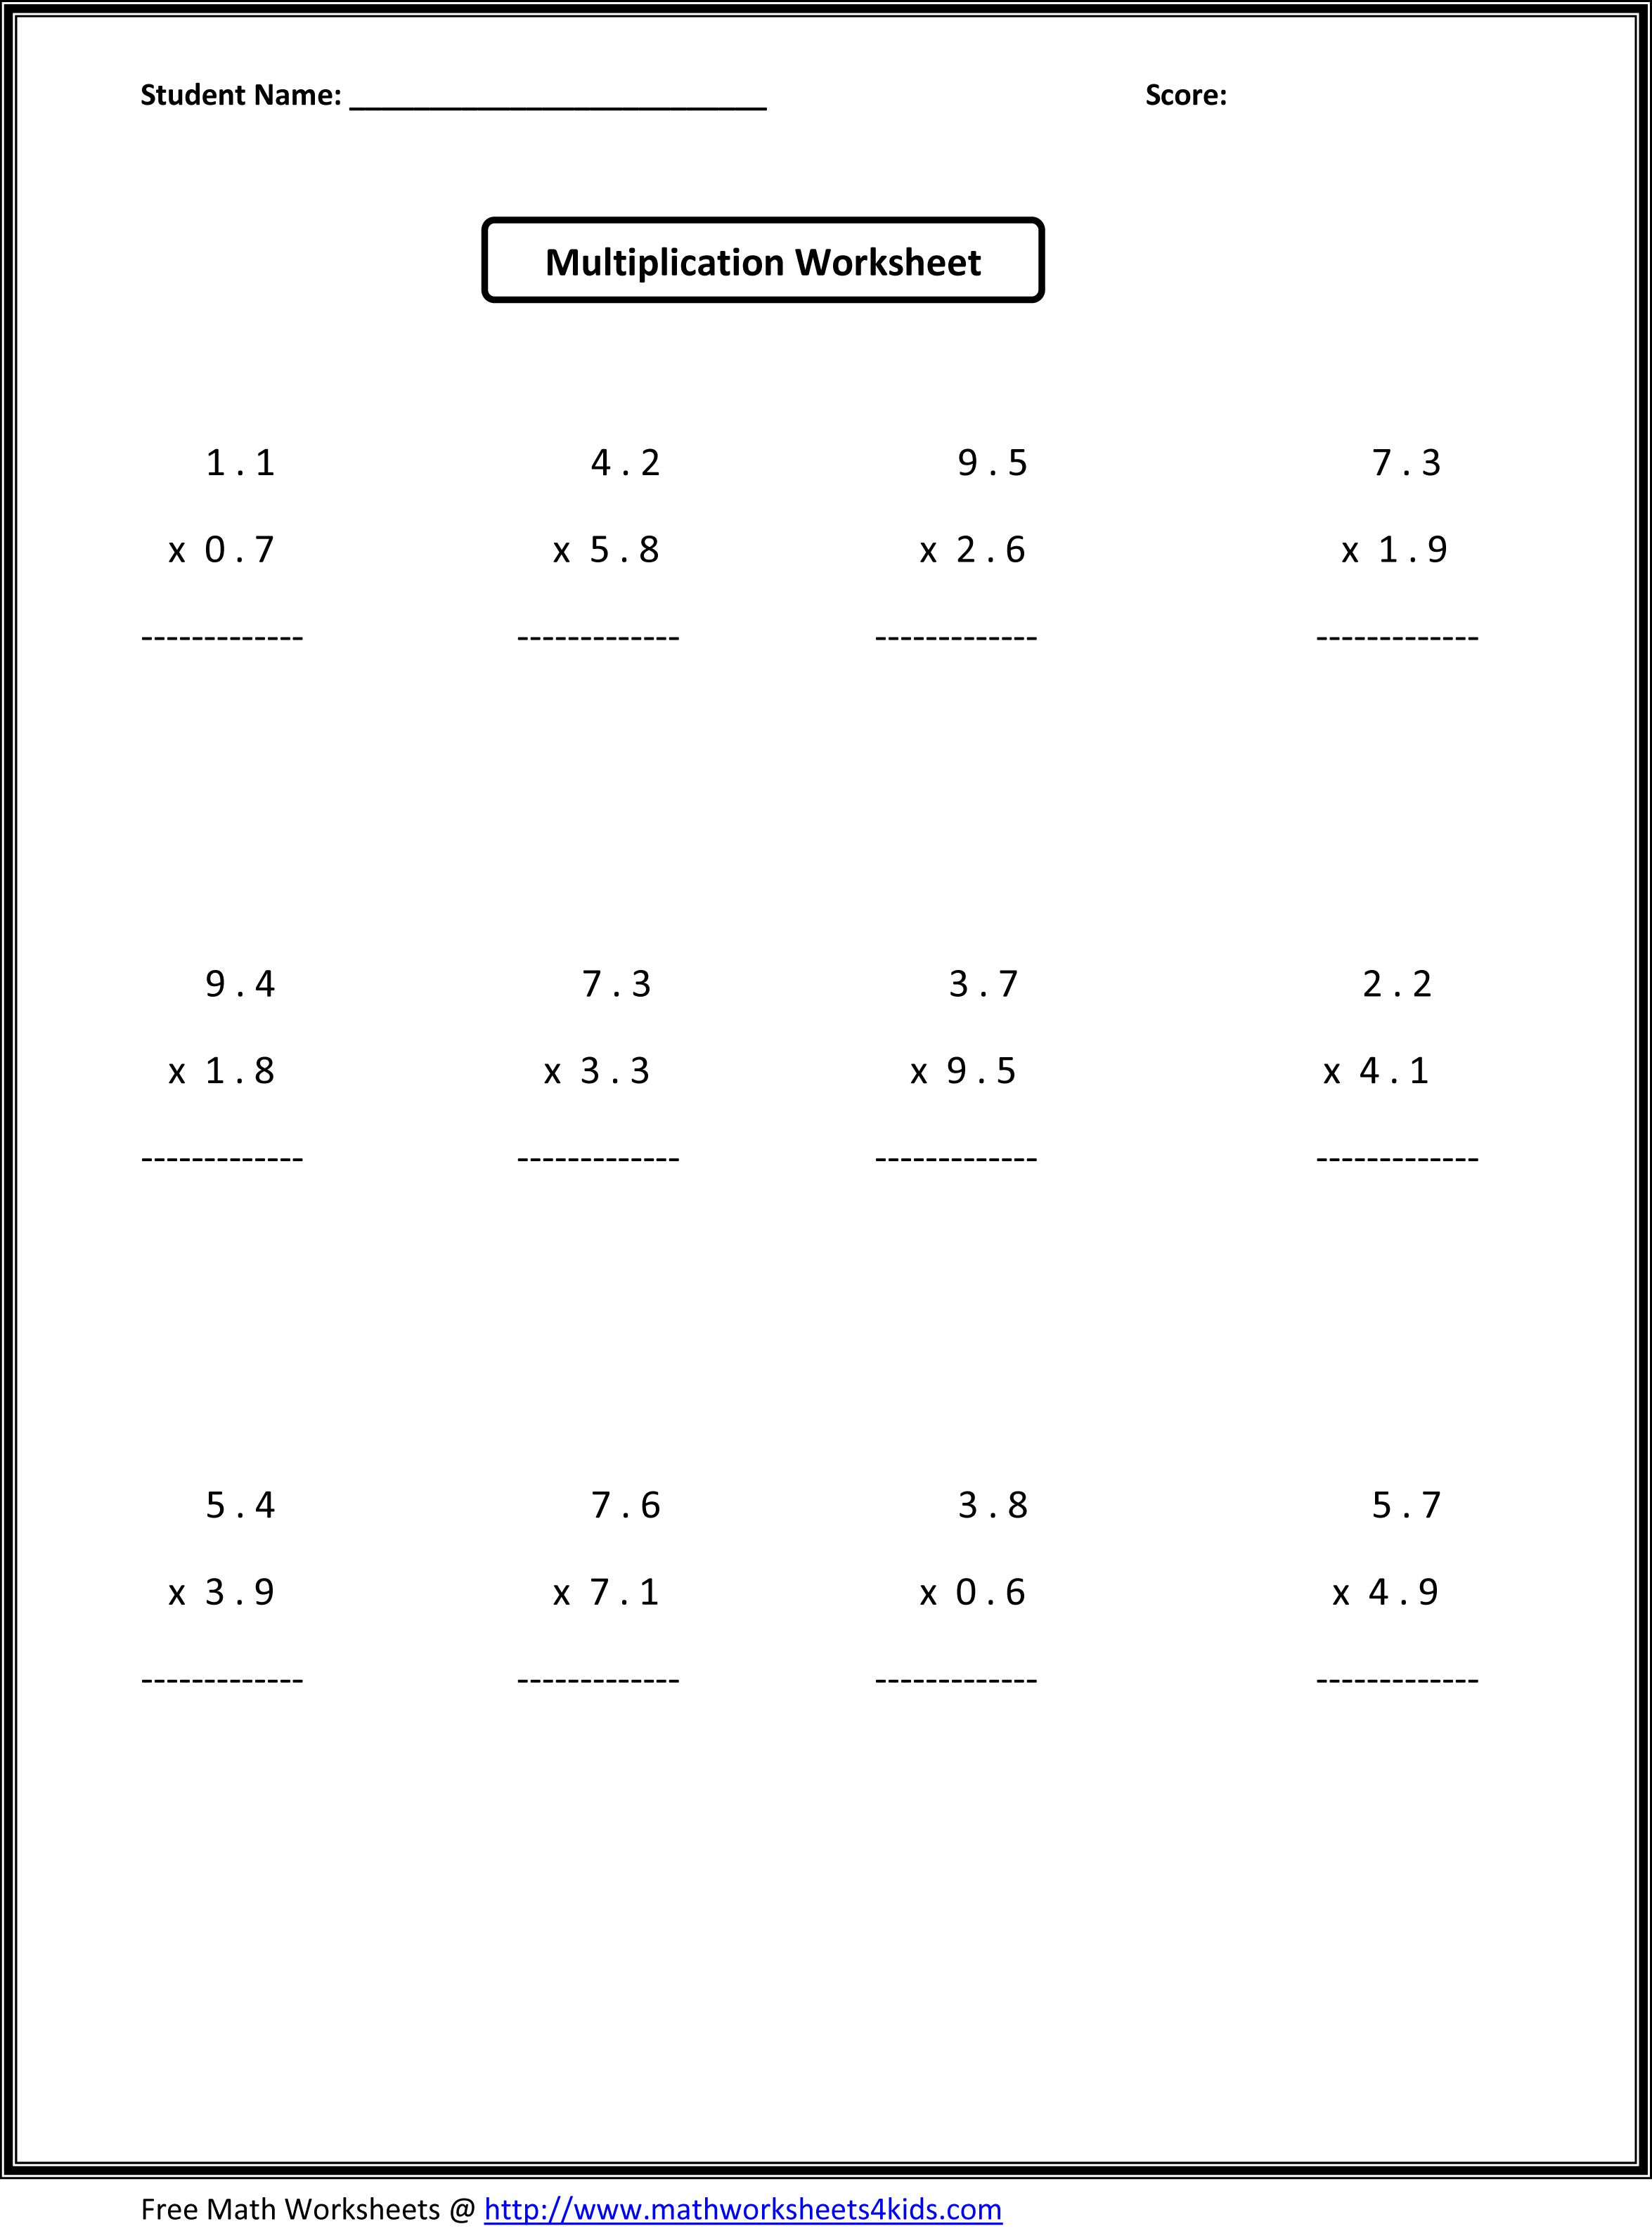 16 Best 5th Grade Ratio Worksheets Images On Best